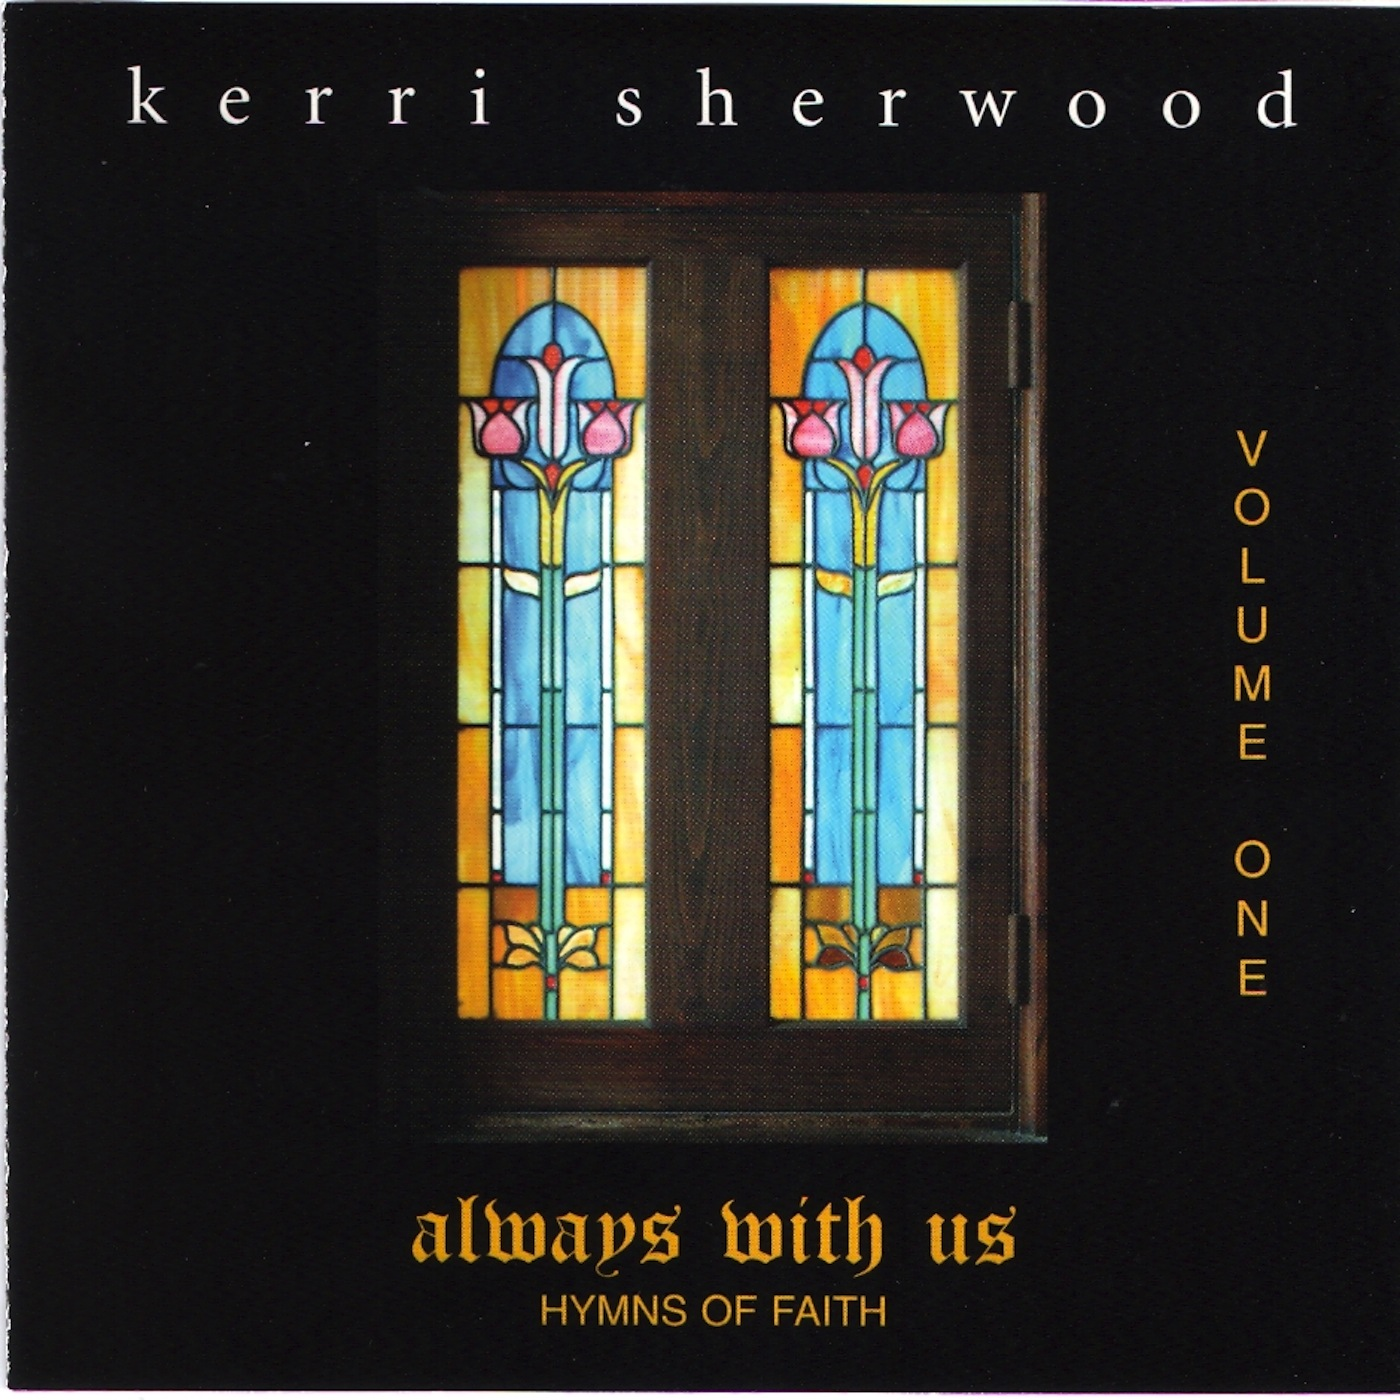 always with us v1 - hymns of faith